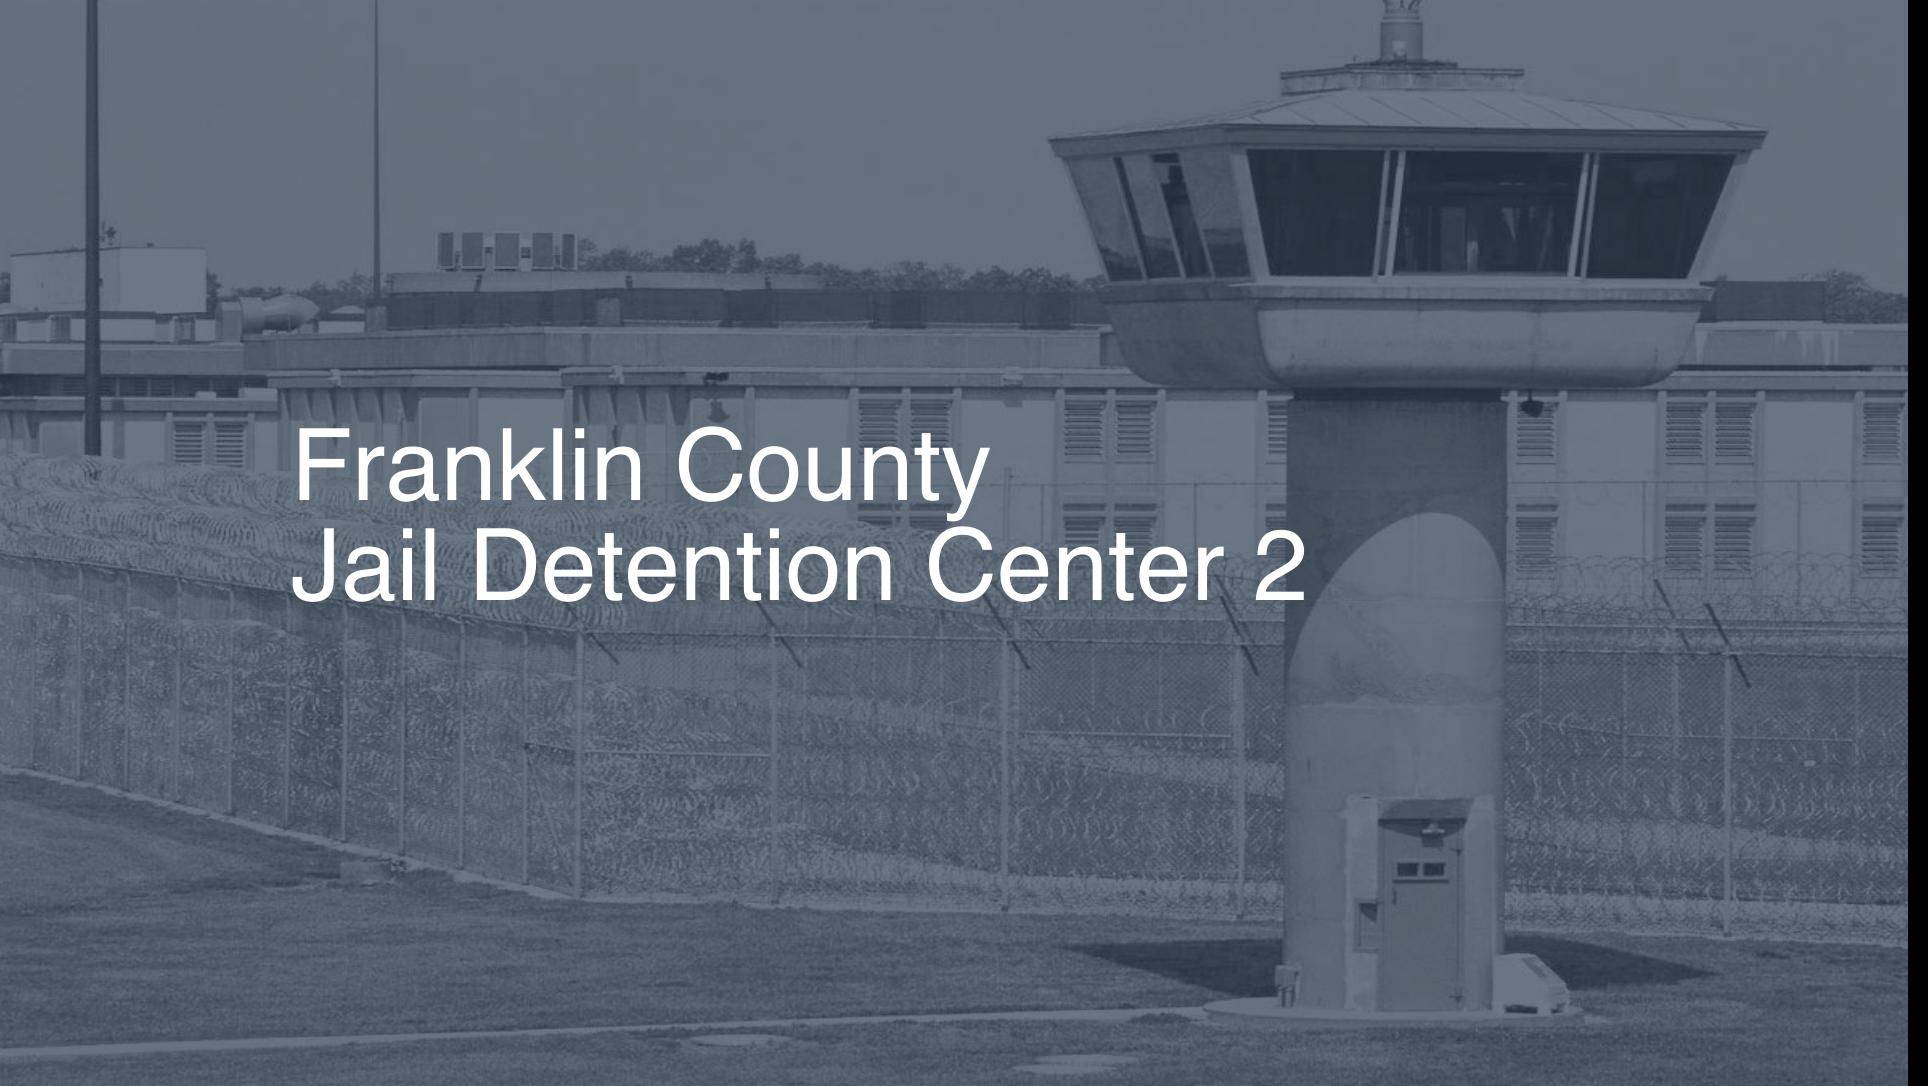 Franklin County Jail & Detention Center Inmate Search, Lookup